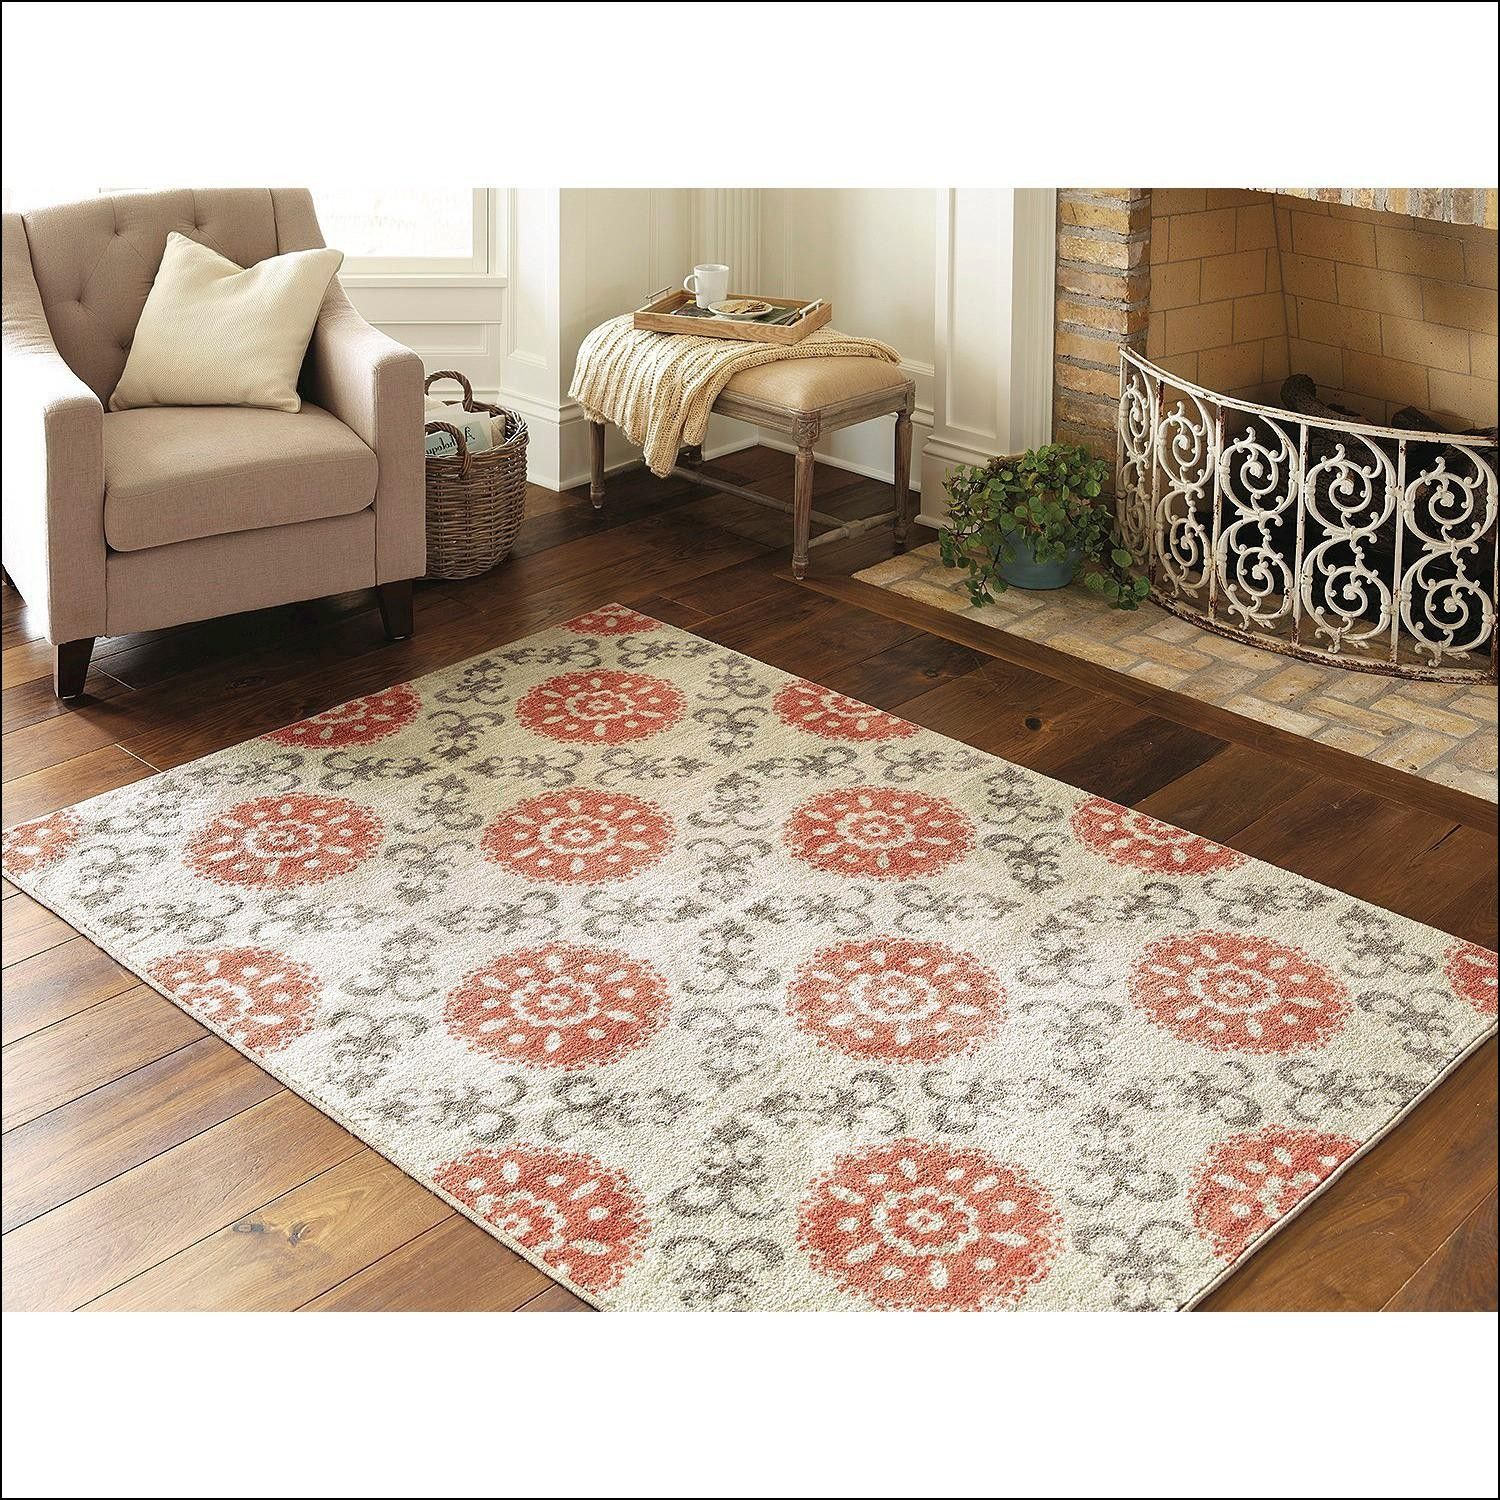 Threshold Brand Rugs Gallery Pinterest